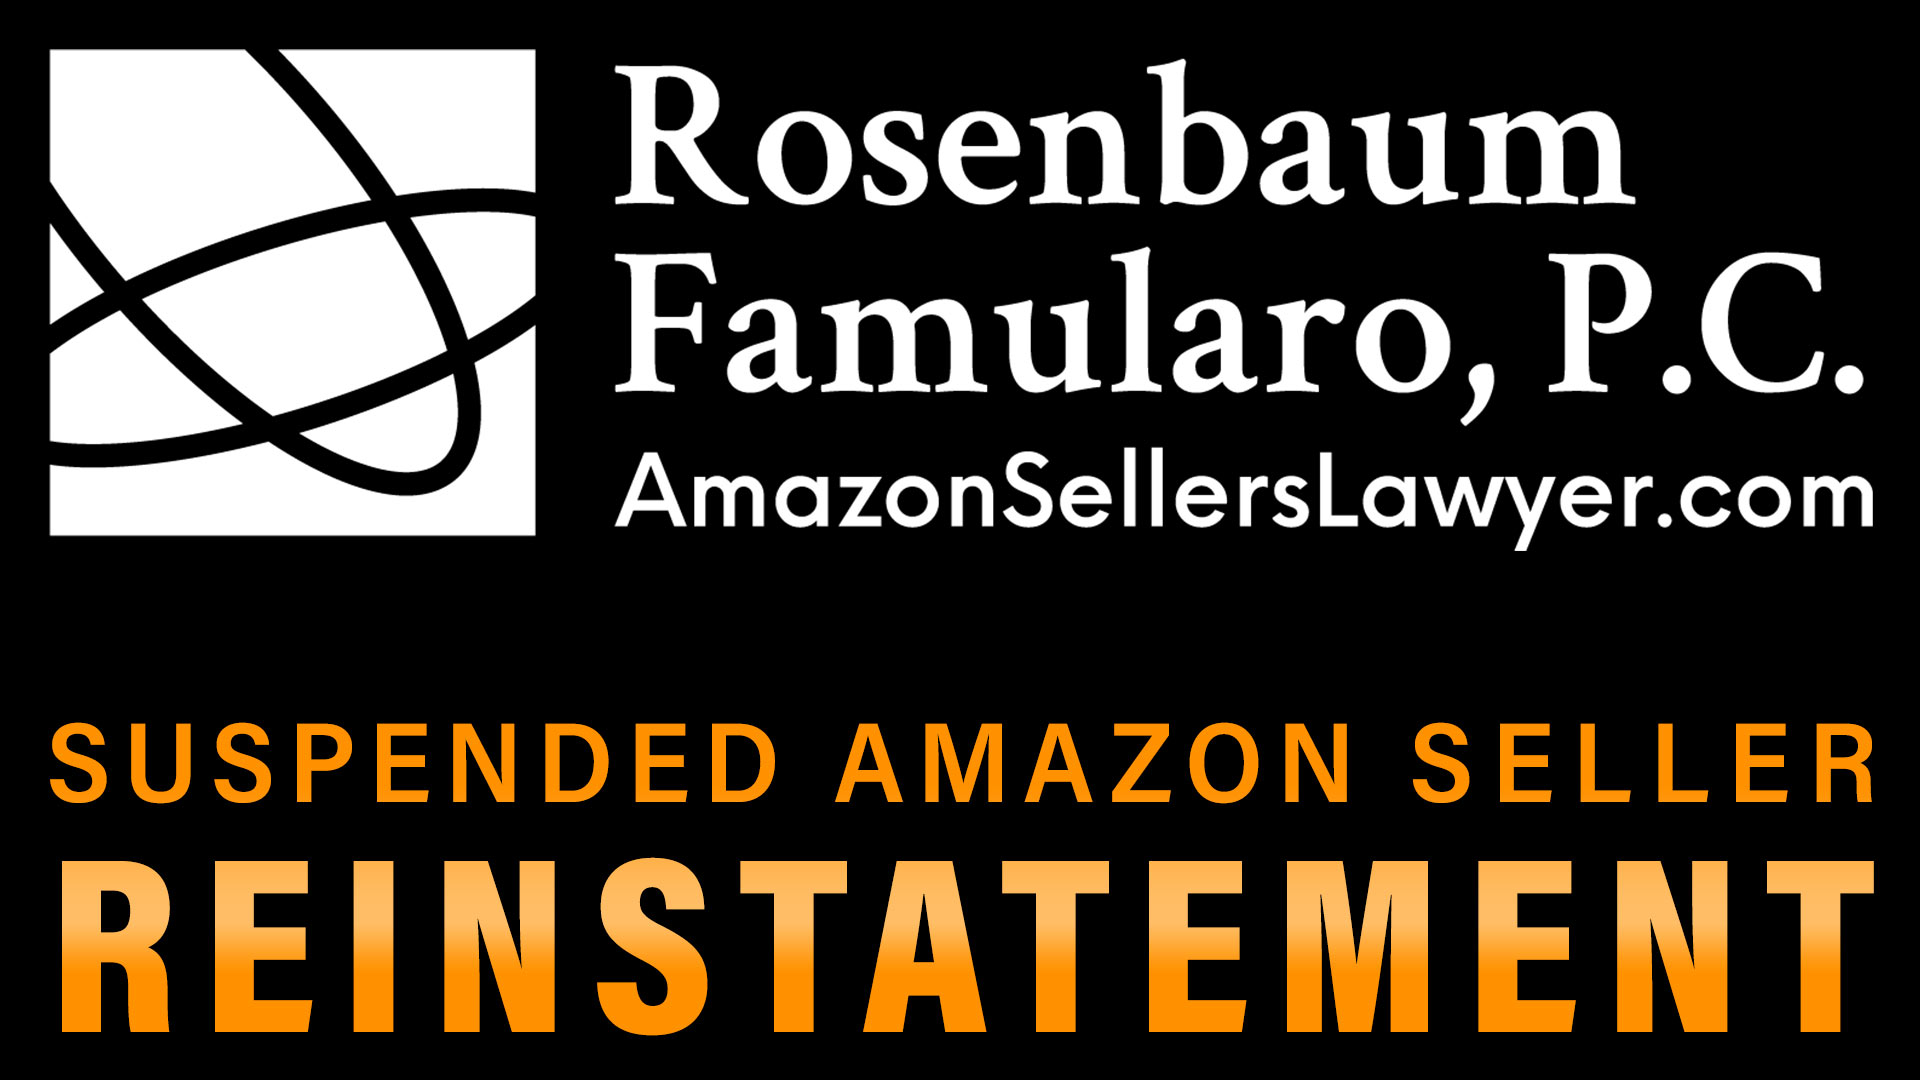 suspended Amazon seller reinstatement